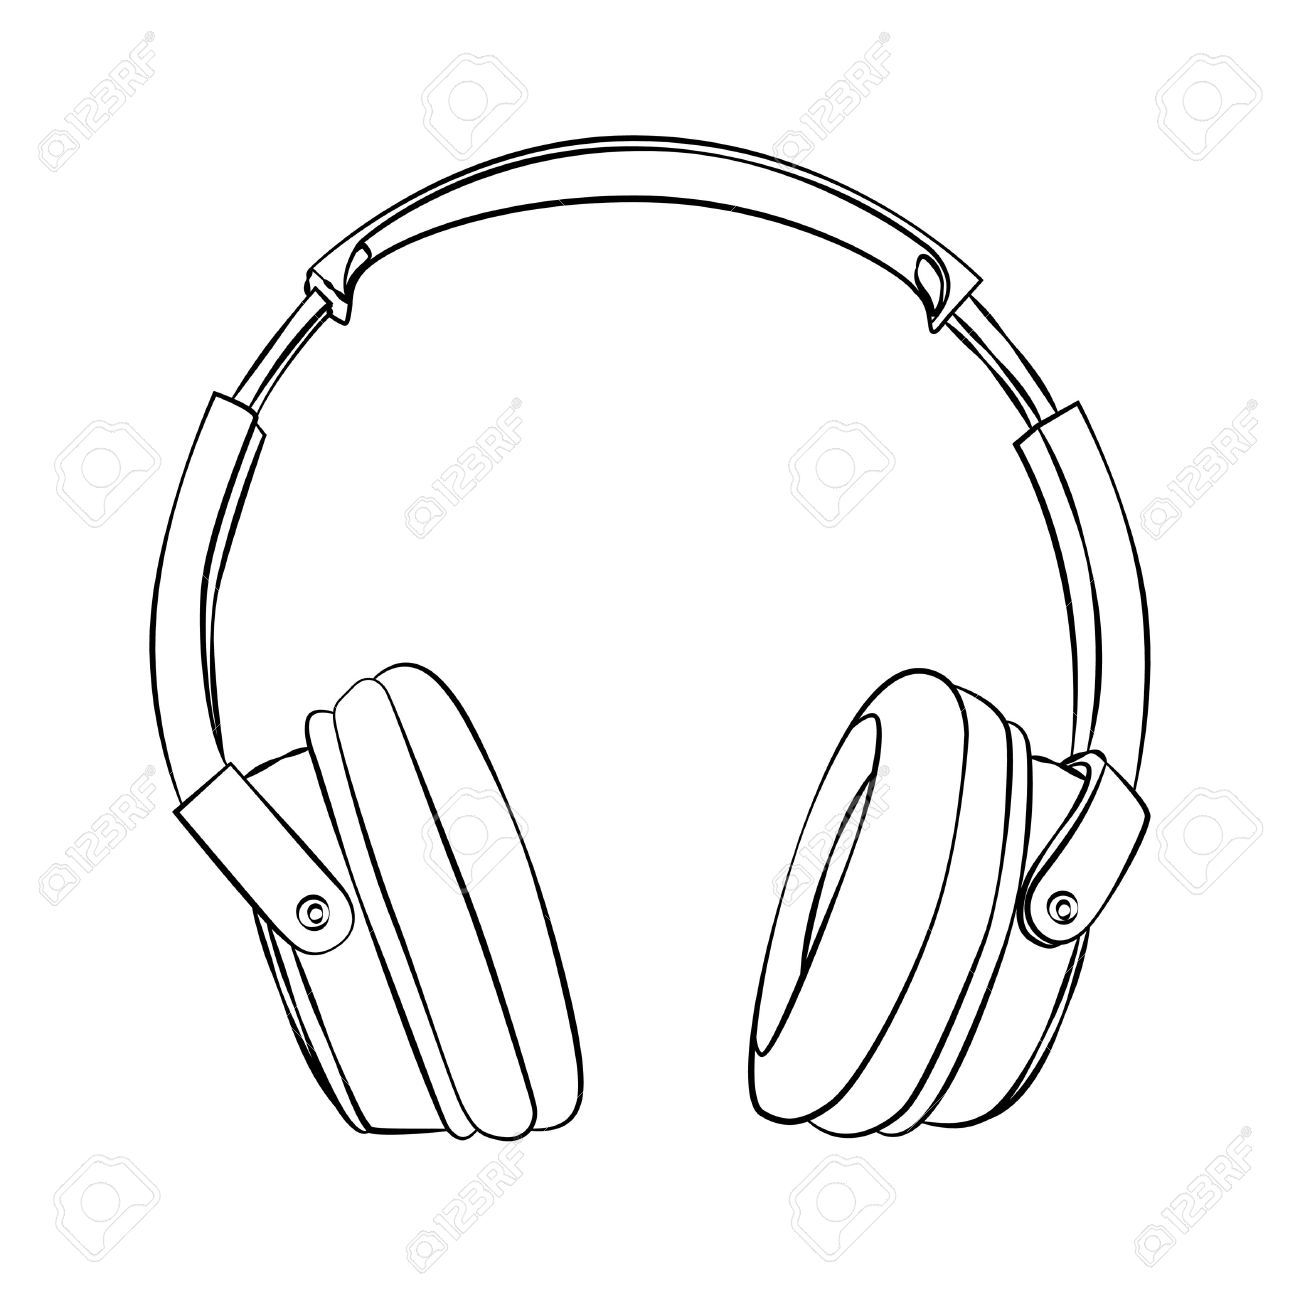 Headphone clipart black and white 3 » Clipart Portal.